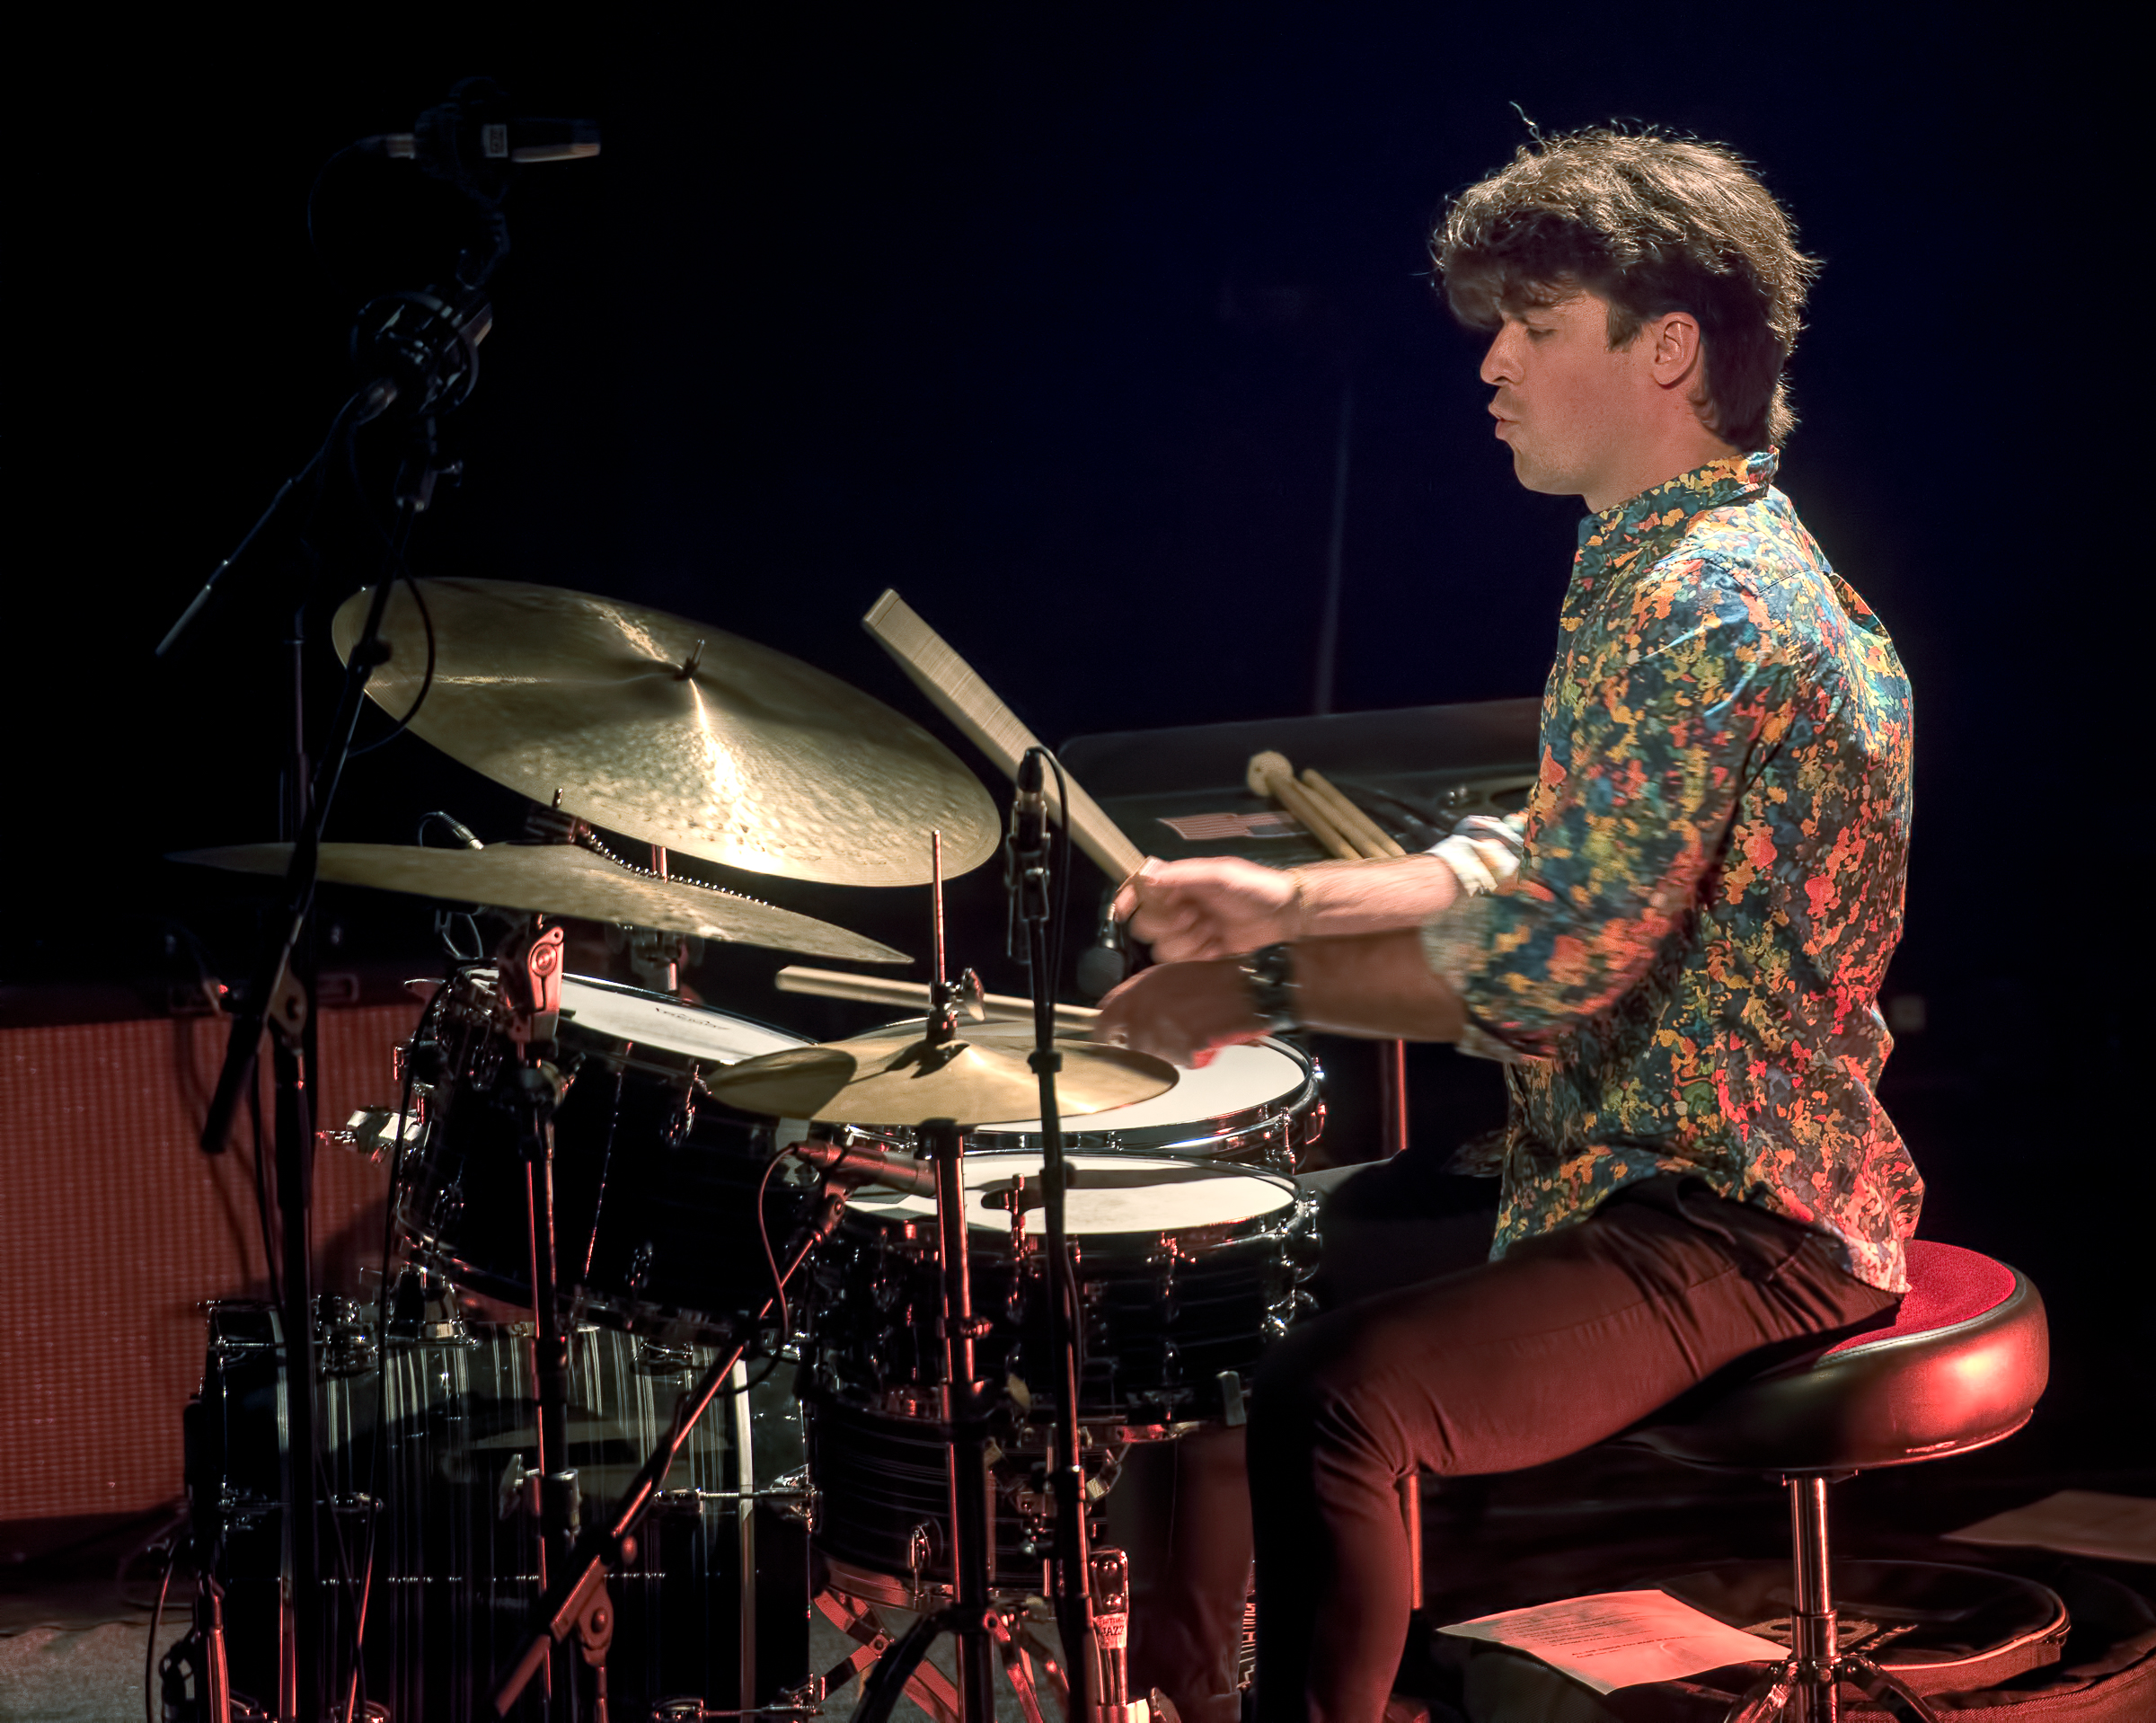 Dominic Cloutier with the Emie Rioux-Roussel Trio at The Montreal International Jazz Festival 2018